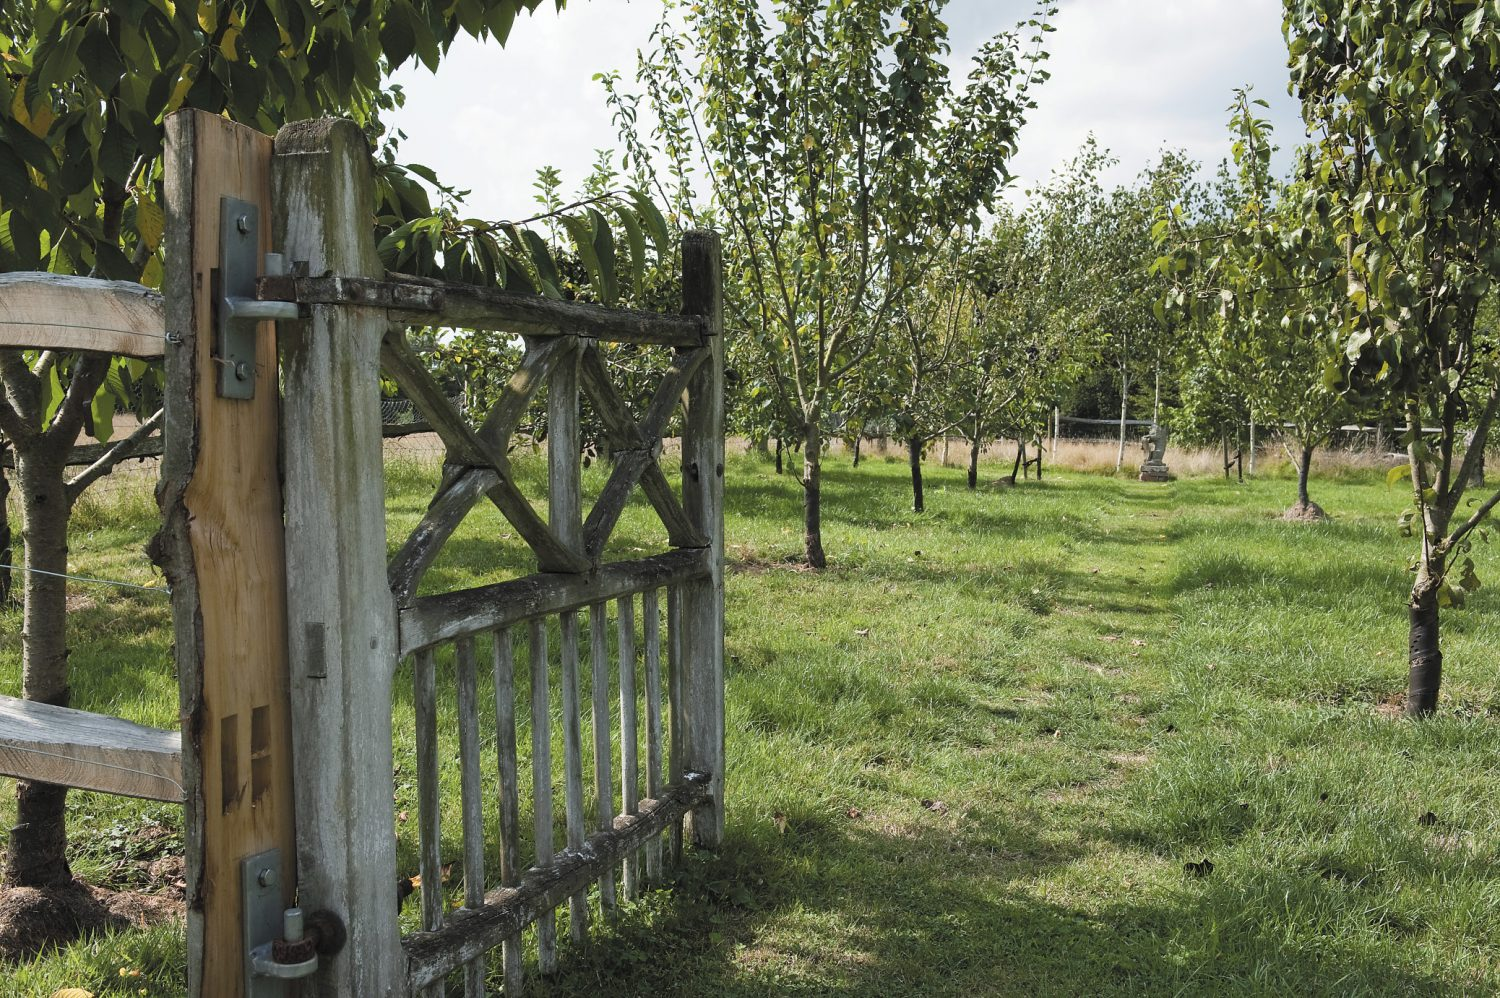 Molly's mixed orchard provides her with a whole host of delicious fruit including apples, plums, damsons, pears and quinces, to name but a few!